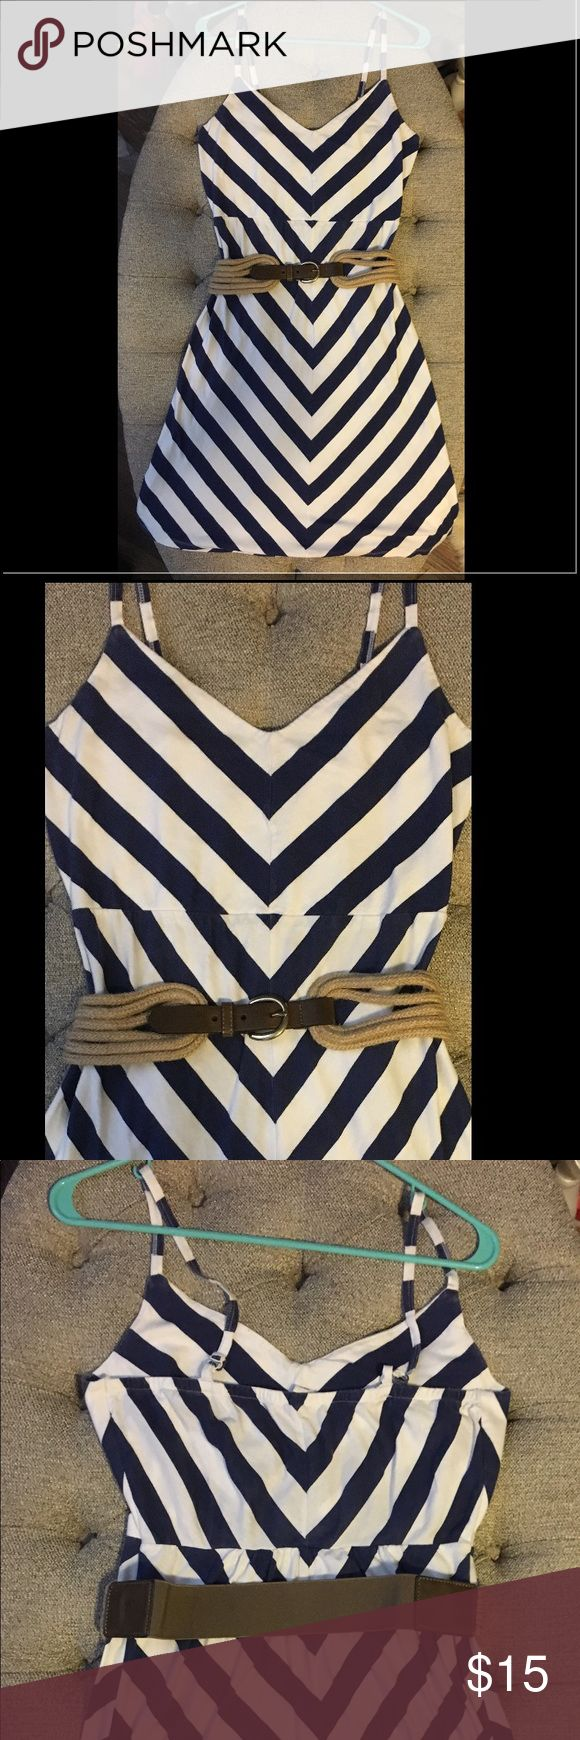 """Old Navy Chevron Print Nautical Dress Ahoy! ⚓️⛵️Super cute, flattering, trendy chevron print dress from Old Navy! Navy blue/White, stretchy cotton fabric, perfect for summer! Great condition, no stains/holes/tears. Belt is separate but if you love it then let me know and we can bundle! Faux leather and rope belt from Nordstrom, unsure of brand, elastic back.  Dress: Bust-17"""", W-14"""",L-34"""".  Belt:L-35.5"""", W-2"""" Old Navy Dresses"""